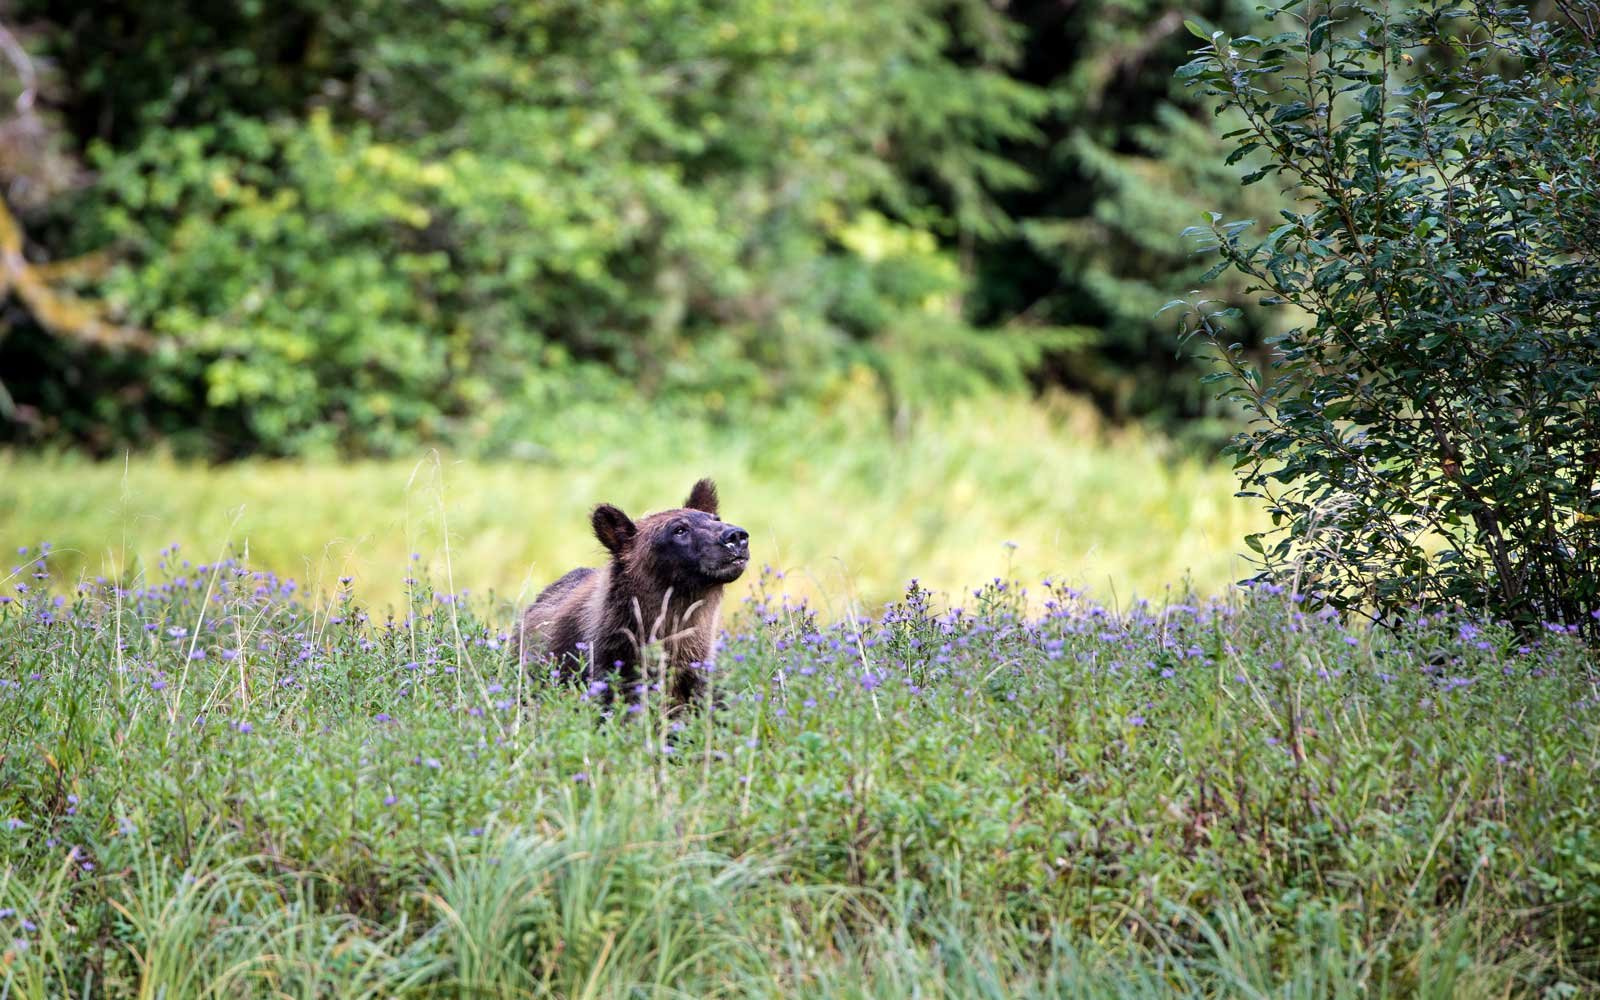 A young bear enjoys a walk in the undergrowth of the remote island of Klemtu in British Columbia, Canada,